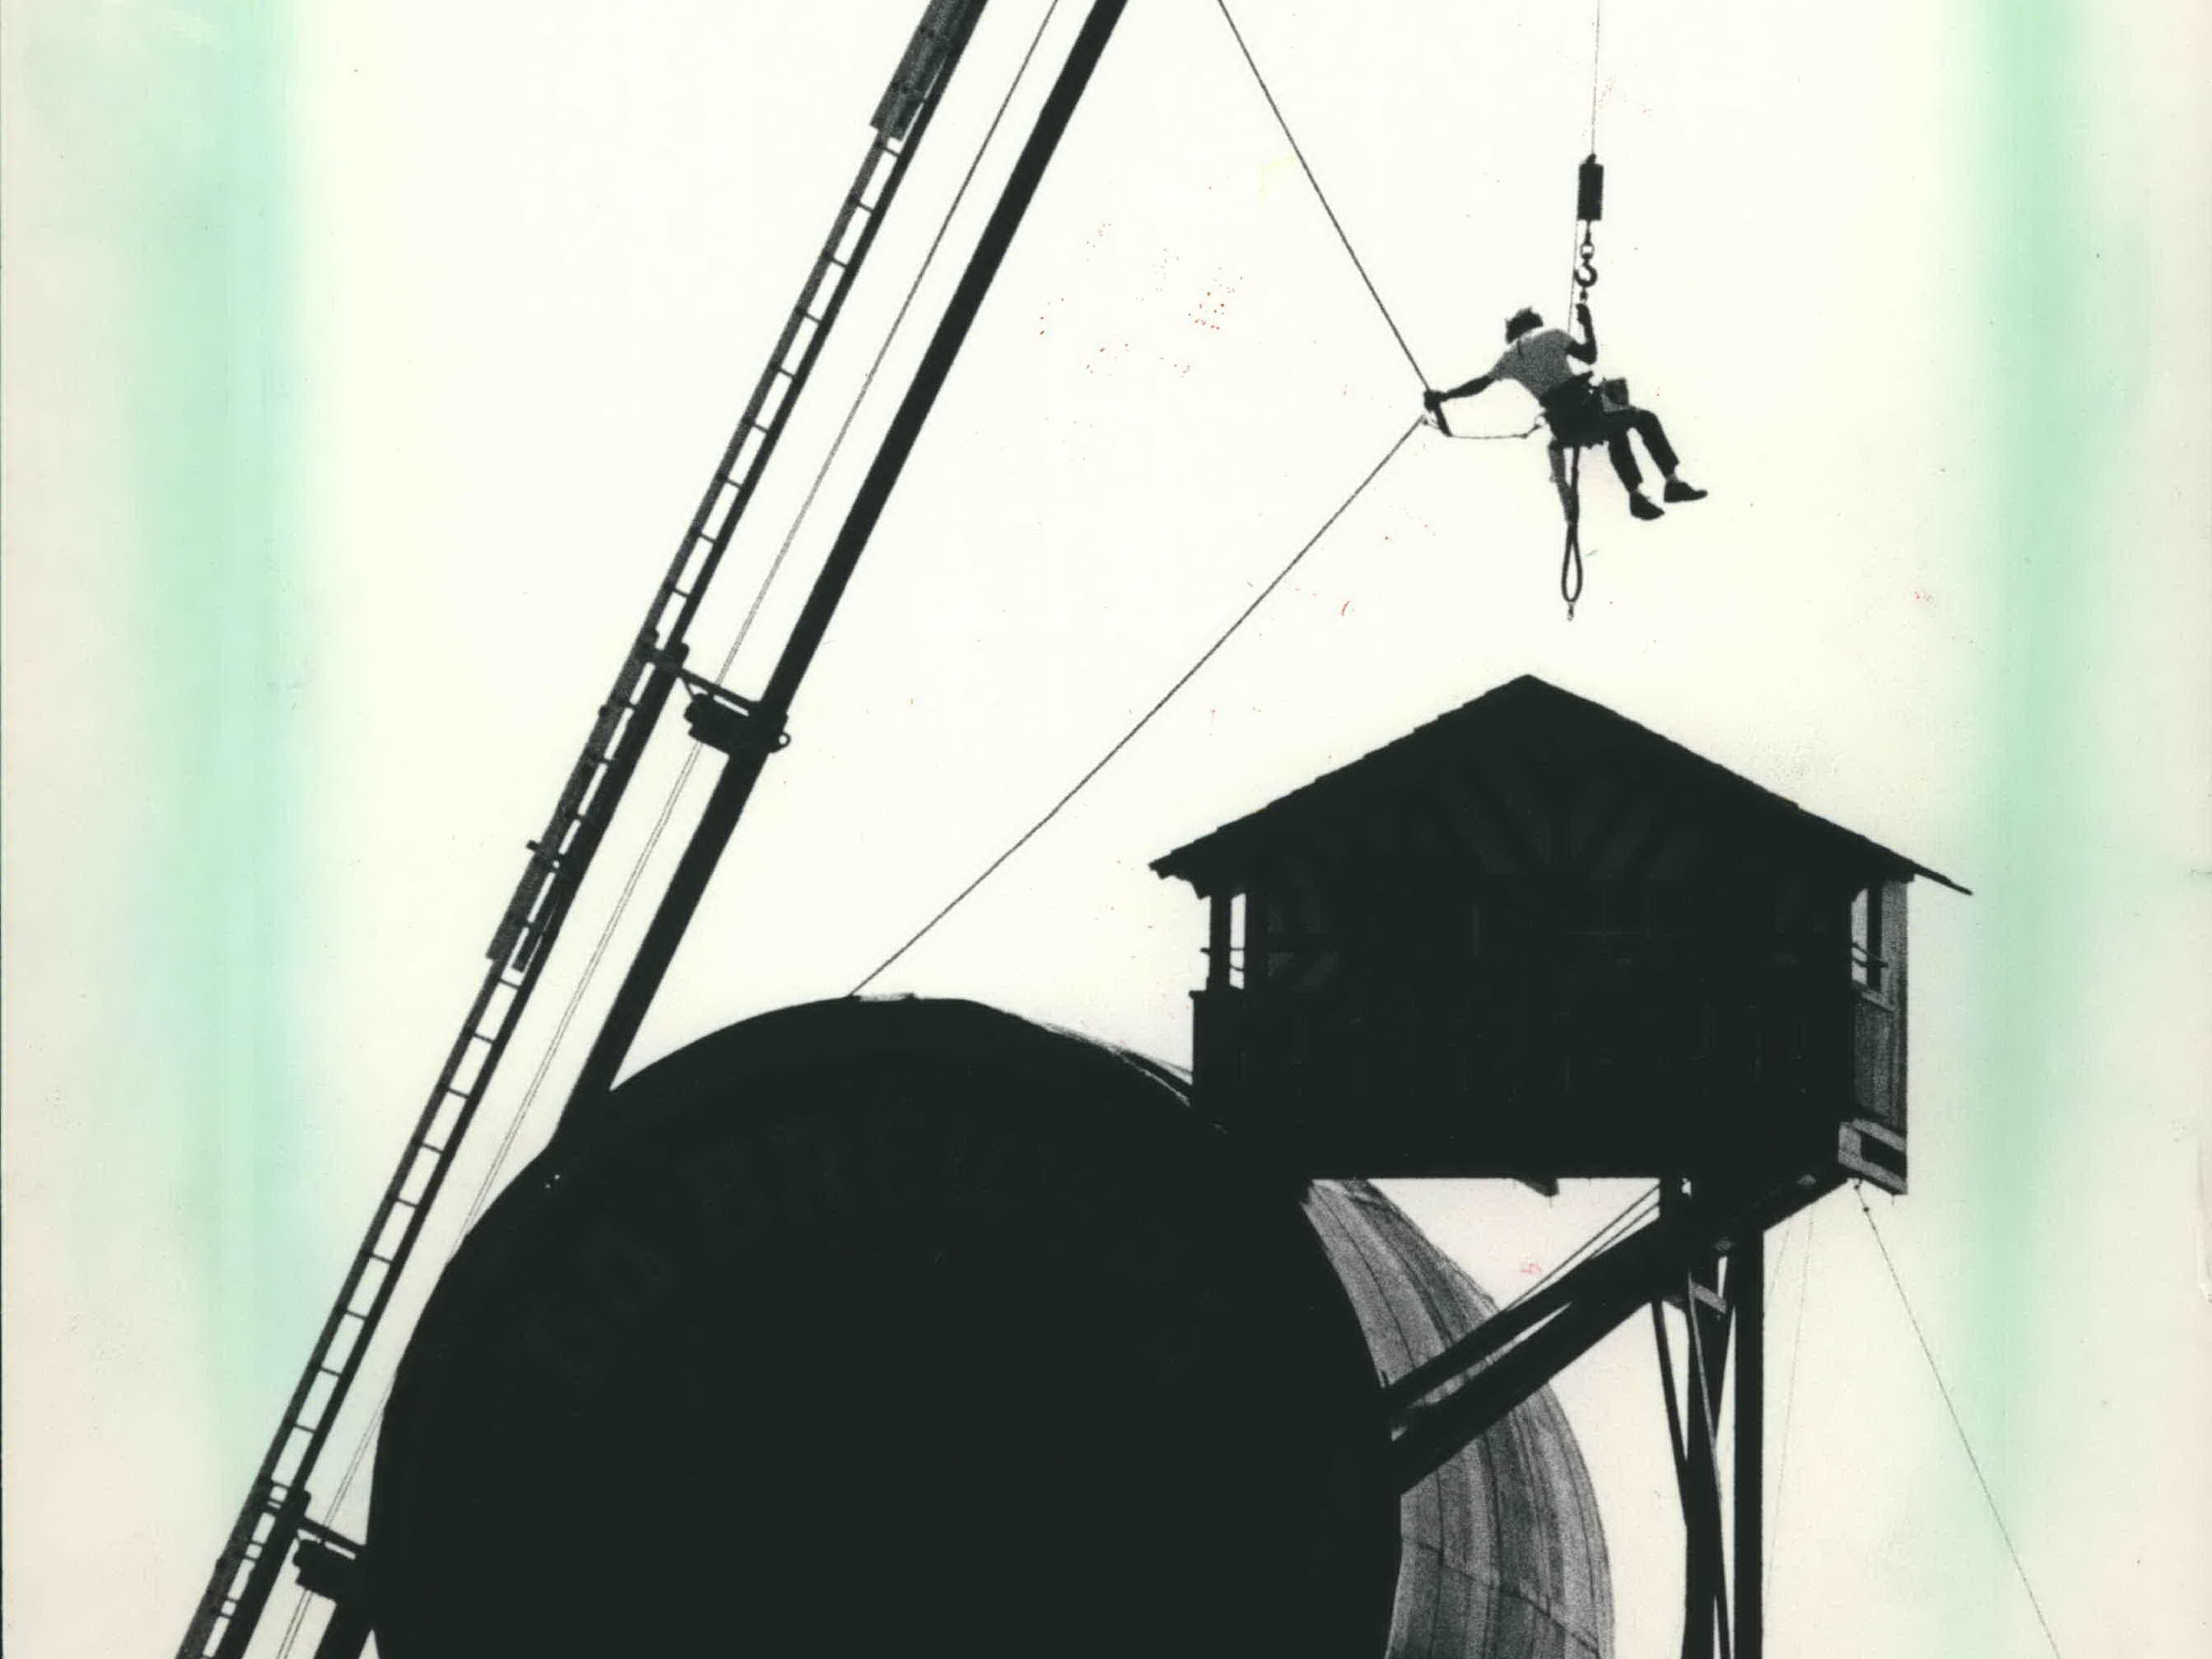 A worker is raised to the roof of the County Stadium chalet on July 12, 1983. A crew from Derse Sign Co. was doing routine maintenance on Bernie Brewer's chalet - which, it turned out, would be taken down after the 1984 season. This photo was published in the July 13, 1983, Milwaukee Sentinel.